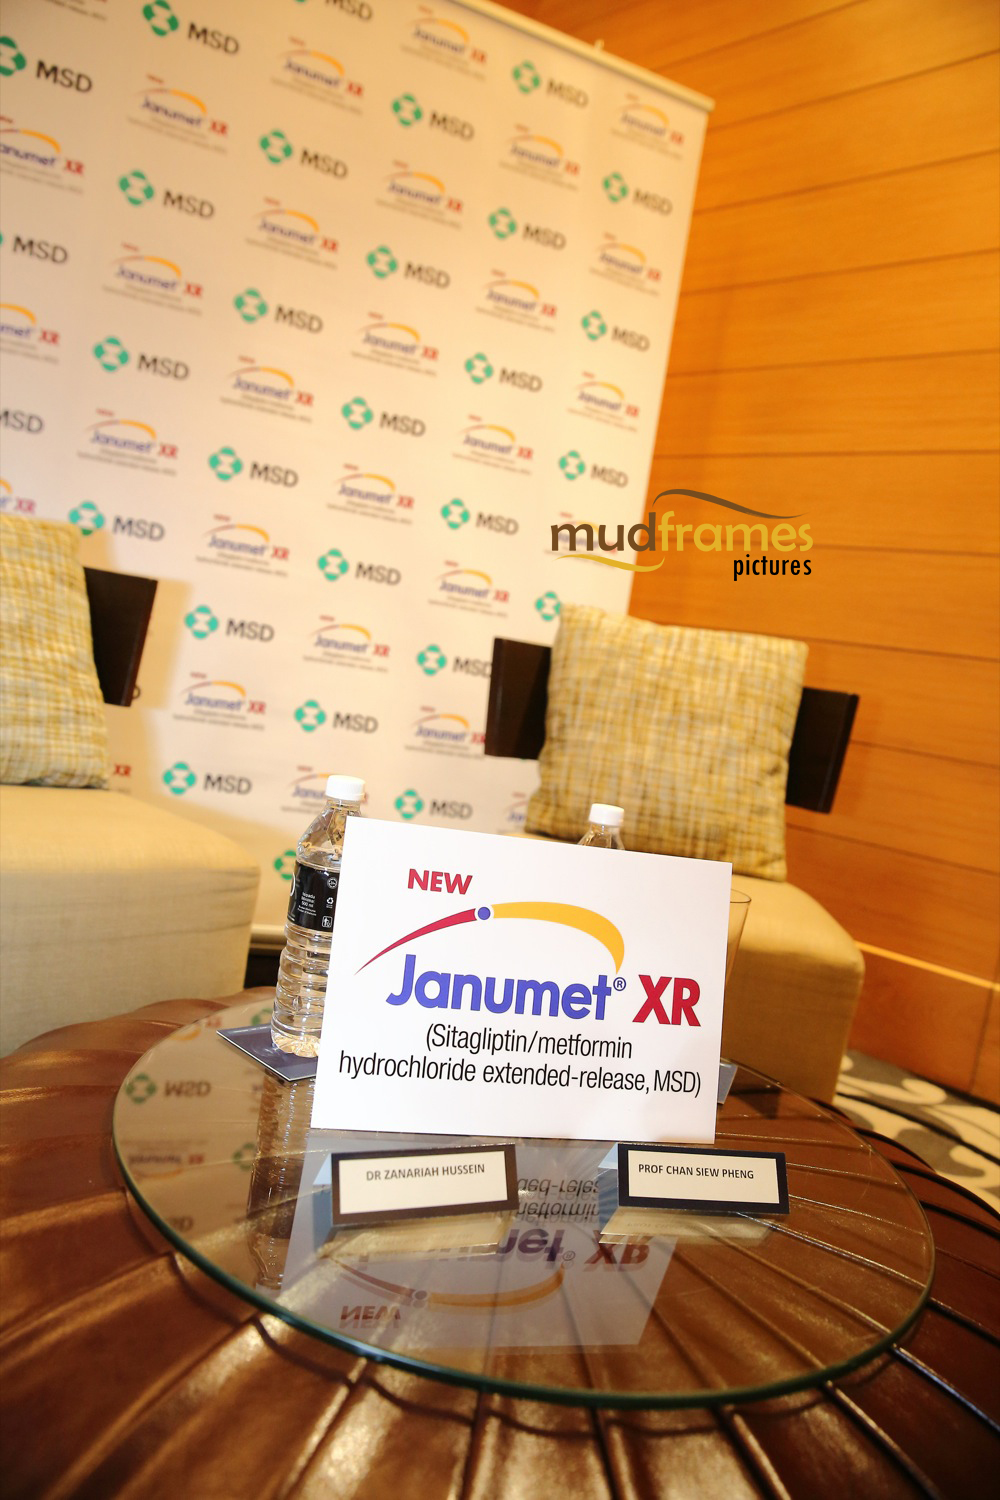 Launch of Janumet XR in Malaysia by MSD